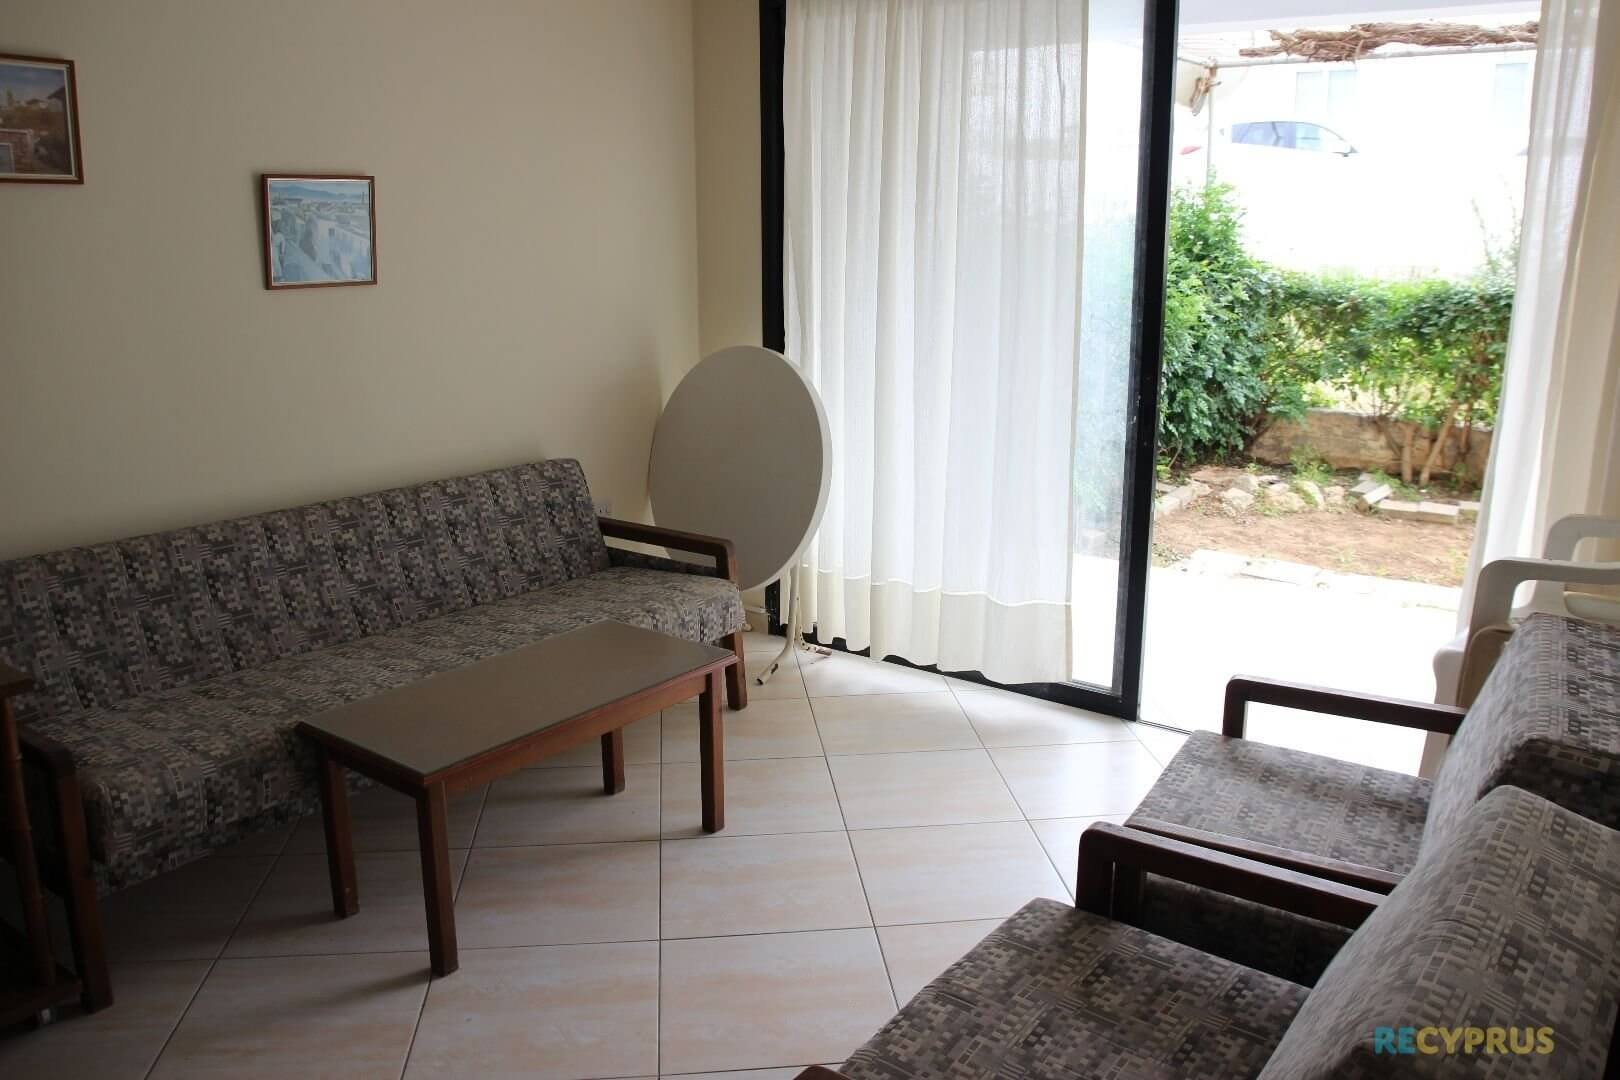 Apartment for sale Kapparis Famagusta Cyprus 3 3559